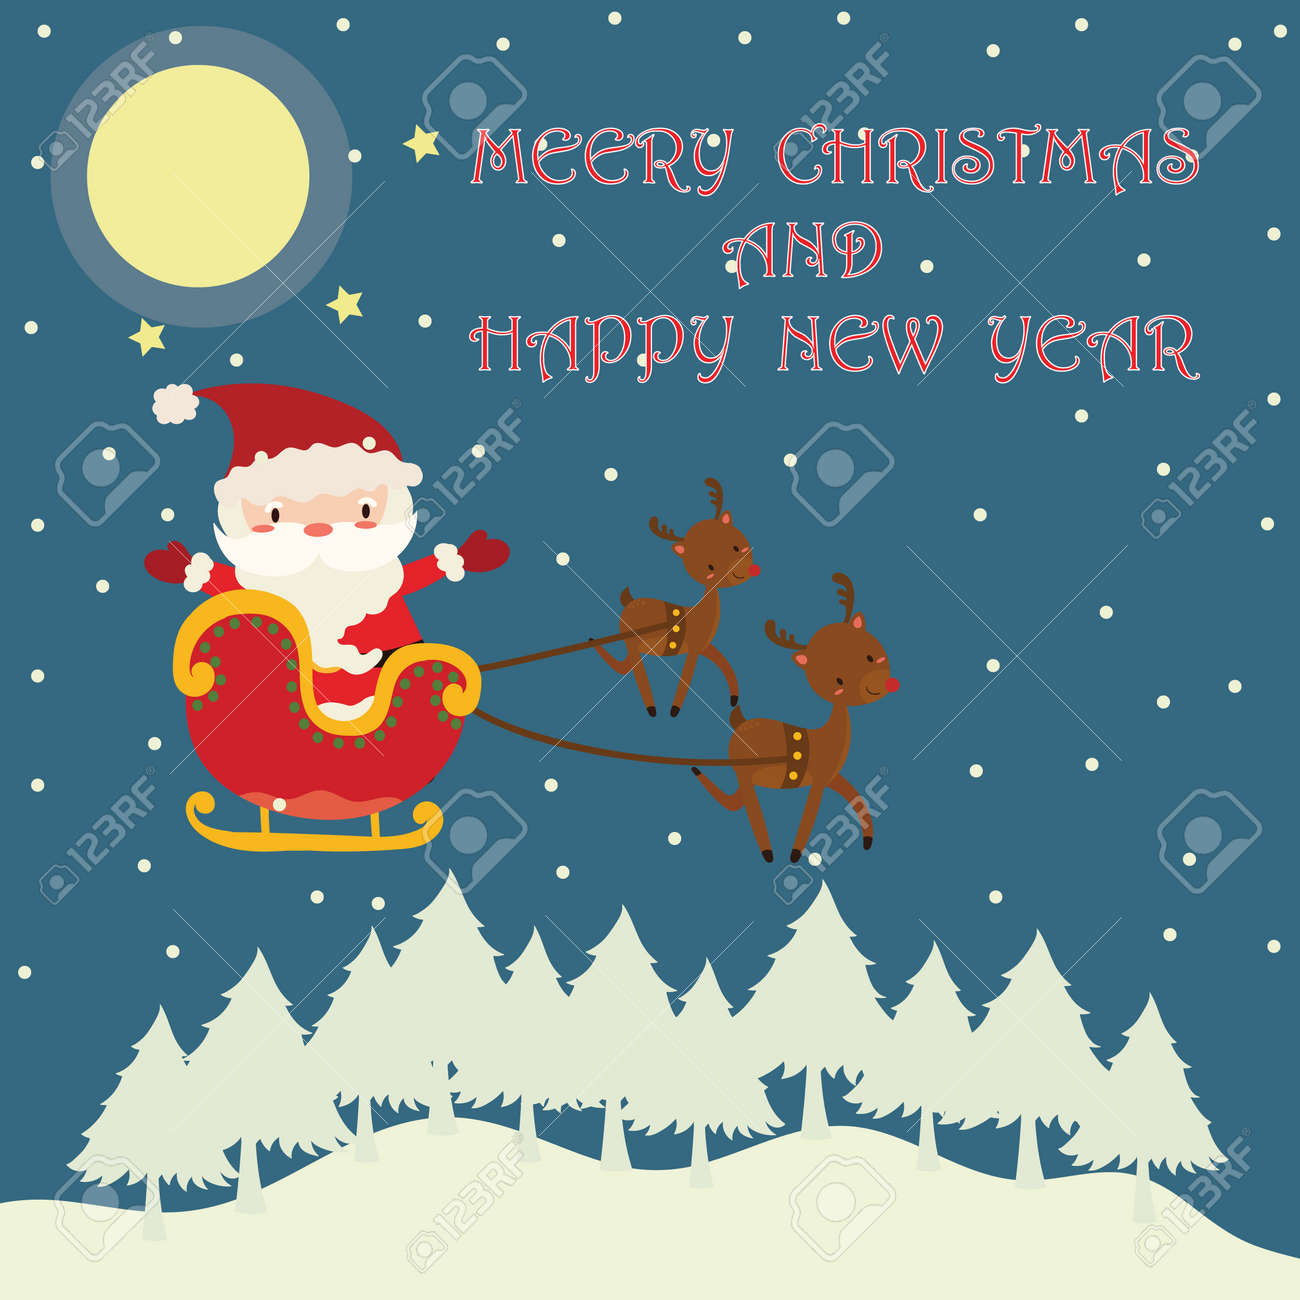 merry christmas and happy new year banner stock vector 91754456